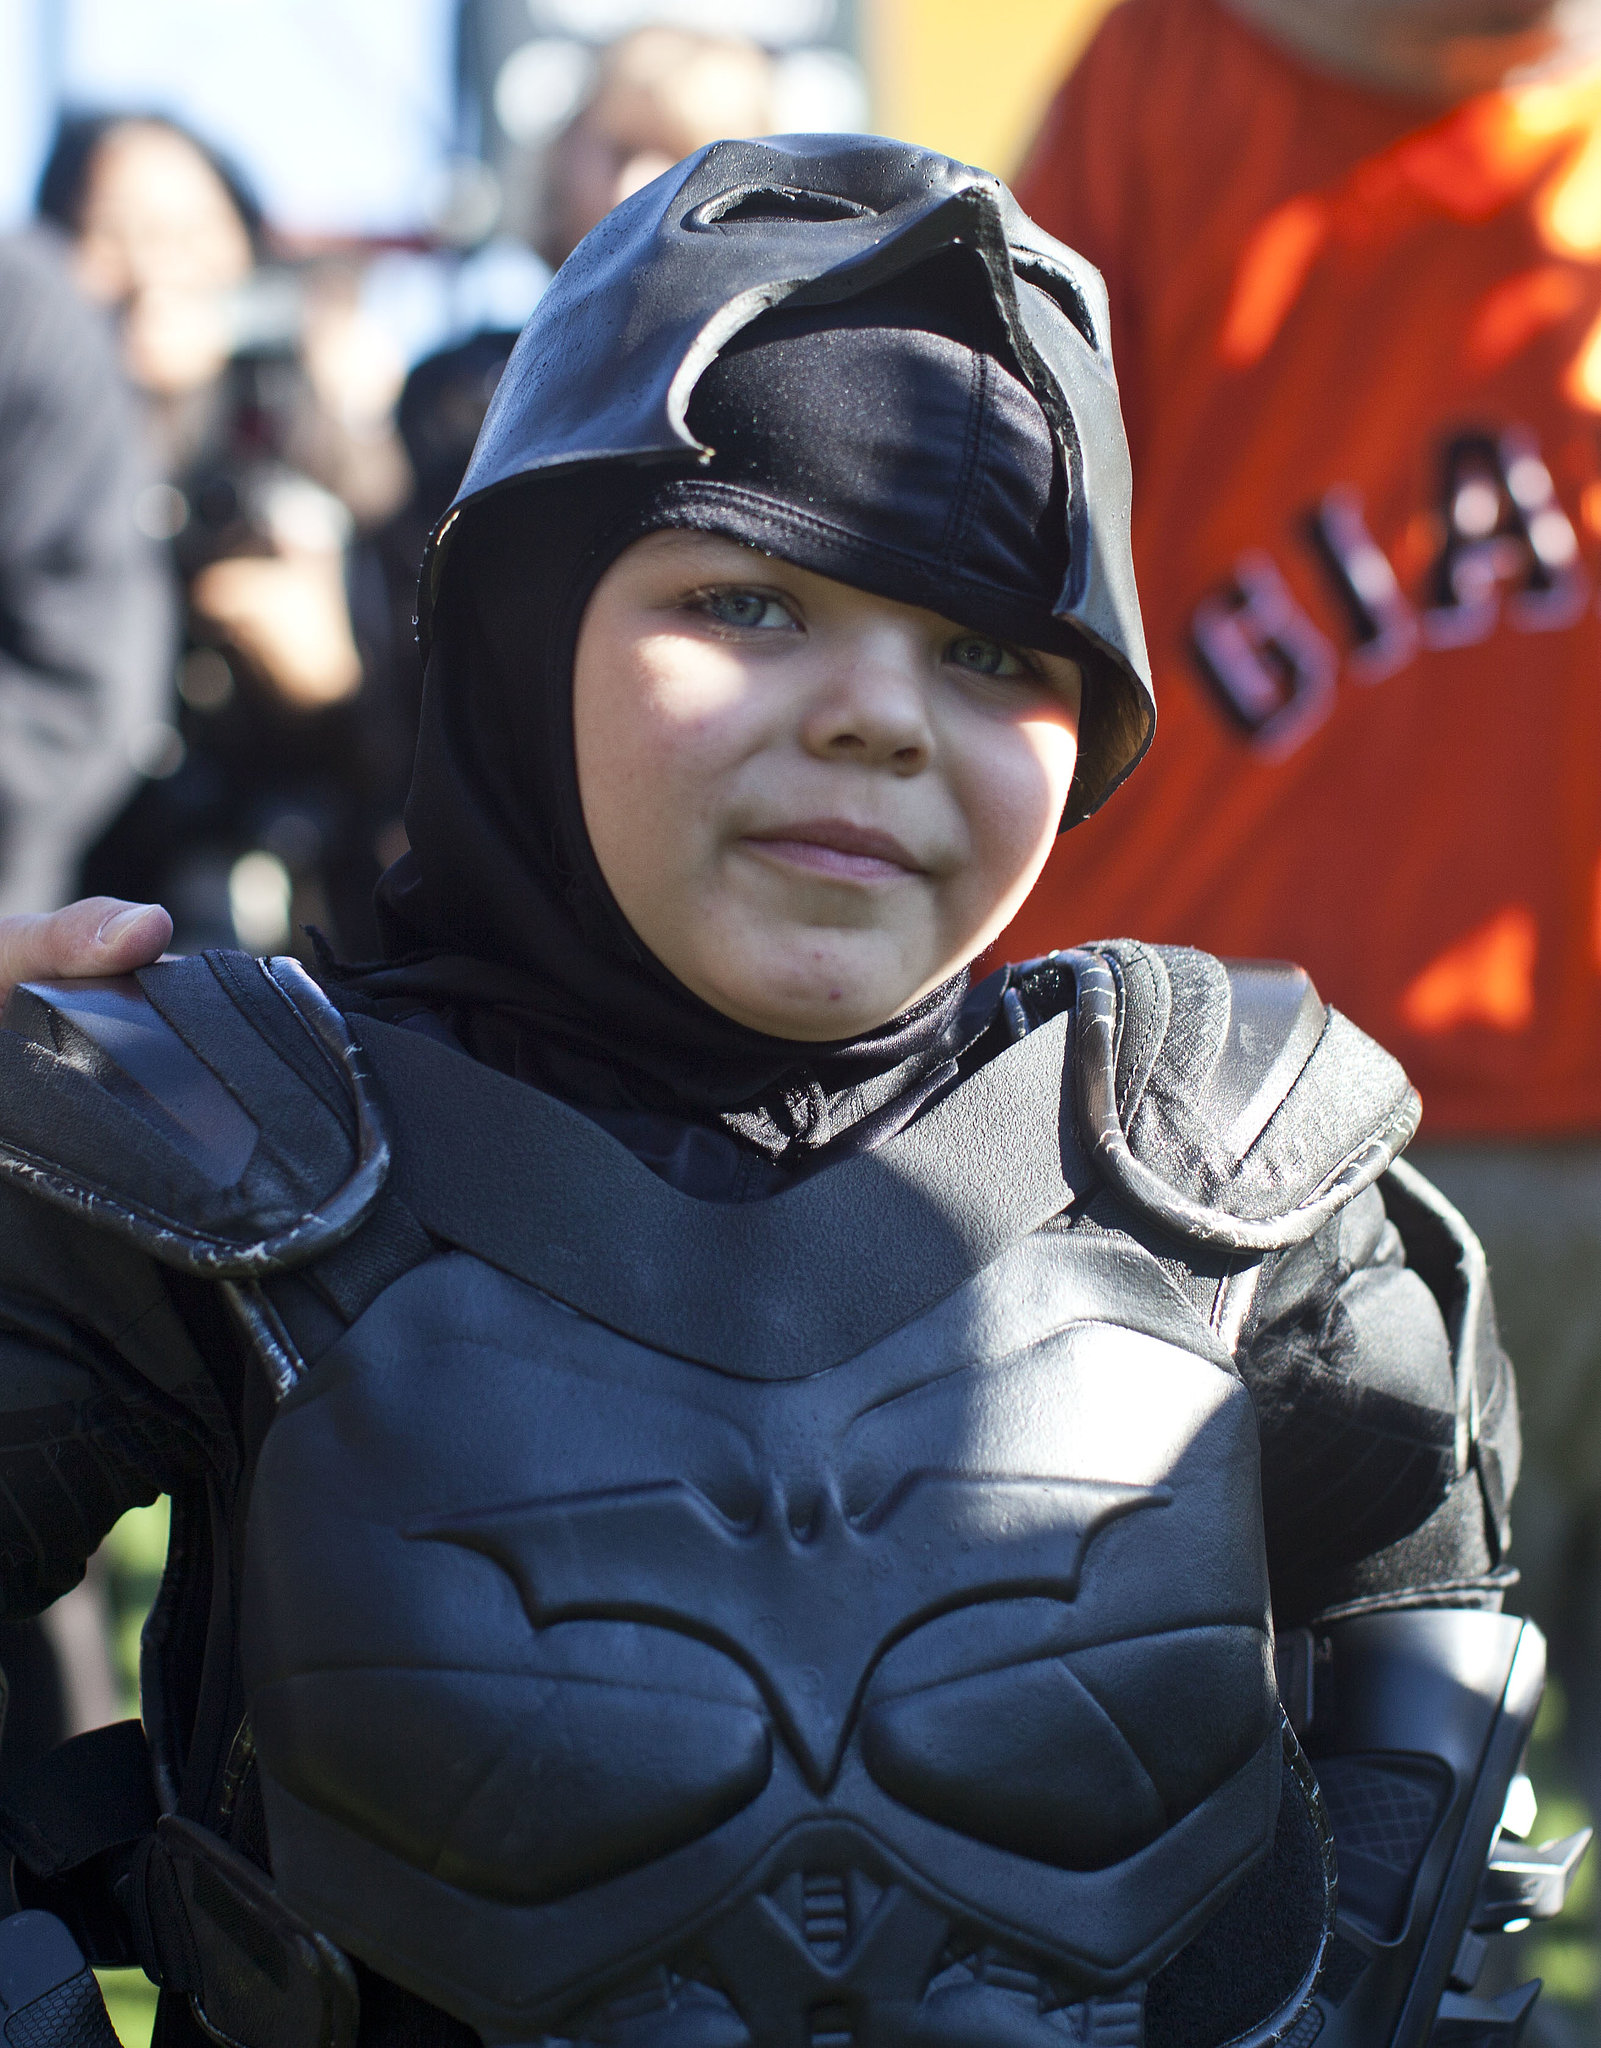 Batkid was all smiles at AT&T Park.